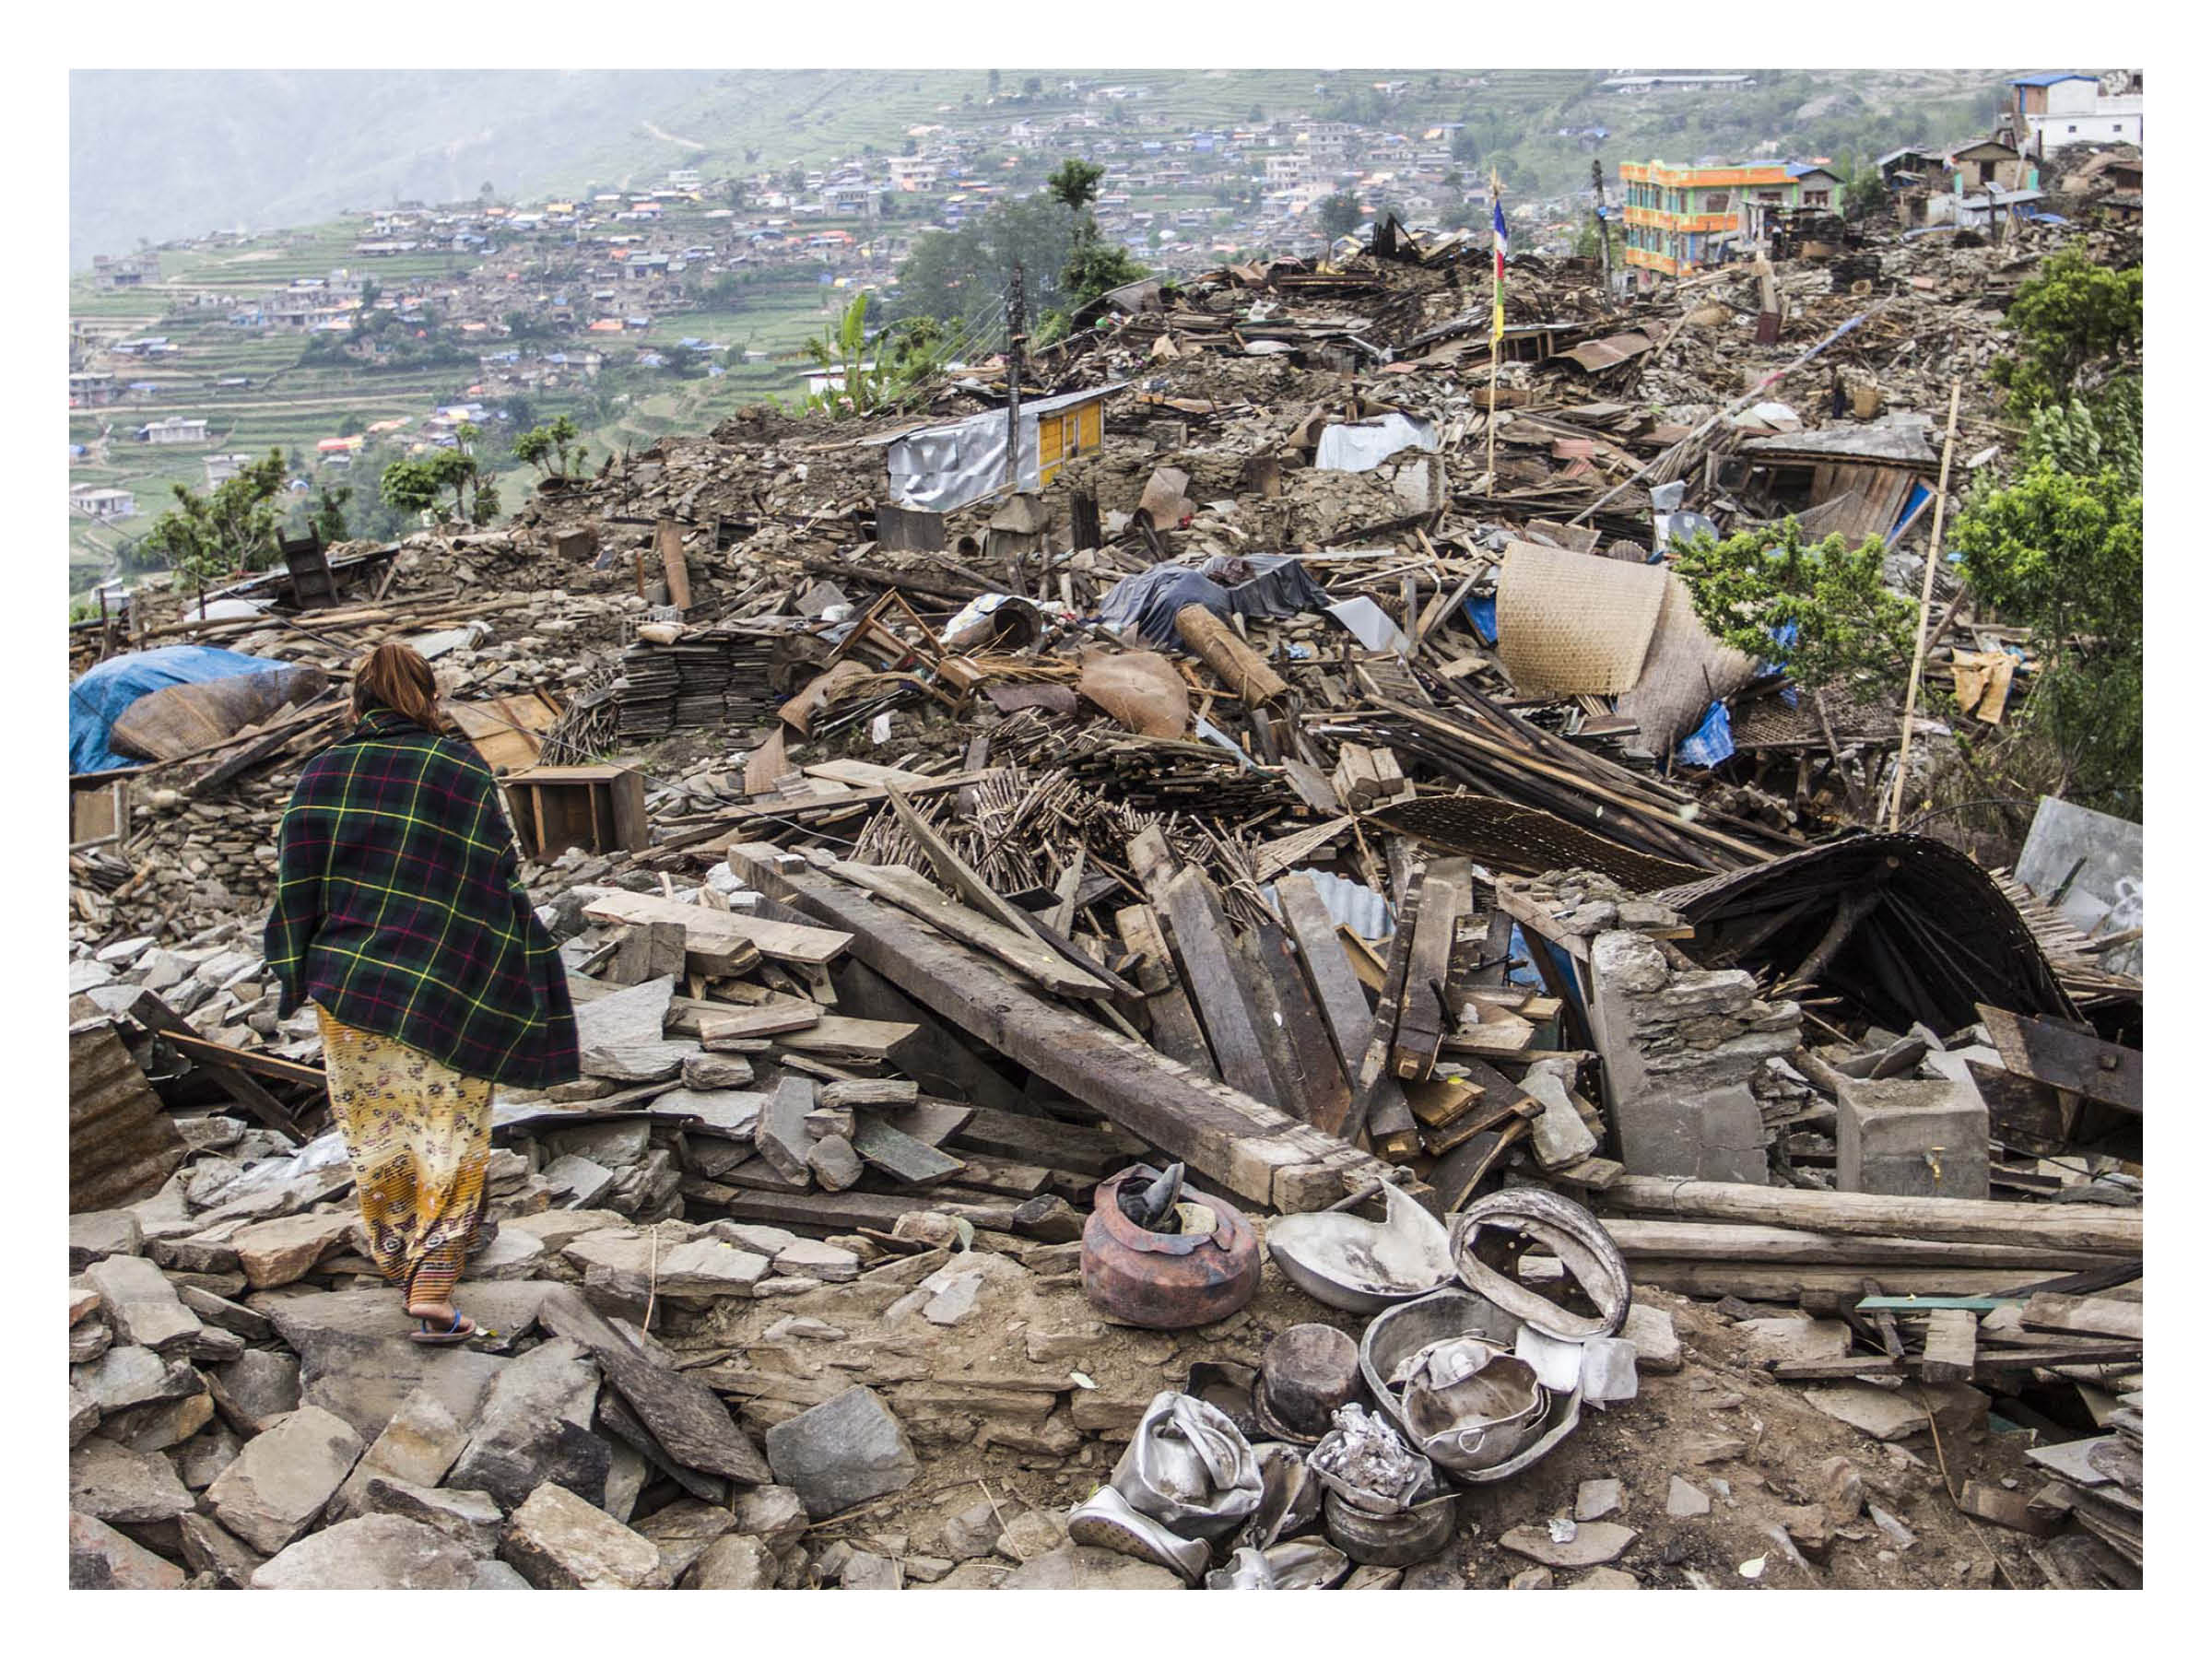 Nepal Earthquake:  At the epicentre of the 2015 #nepal earthquake a woman walks through the remains of the devastated village of Barpak, Gorkha district. The 7.8M earthquake killed an estimated 9000 people on 25th April 2015, followed by another earthquake measuring 7.3M on May 12th with its epicentre on the border of Dolakhaand, Sindhupalchowk district.